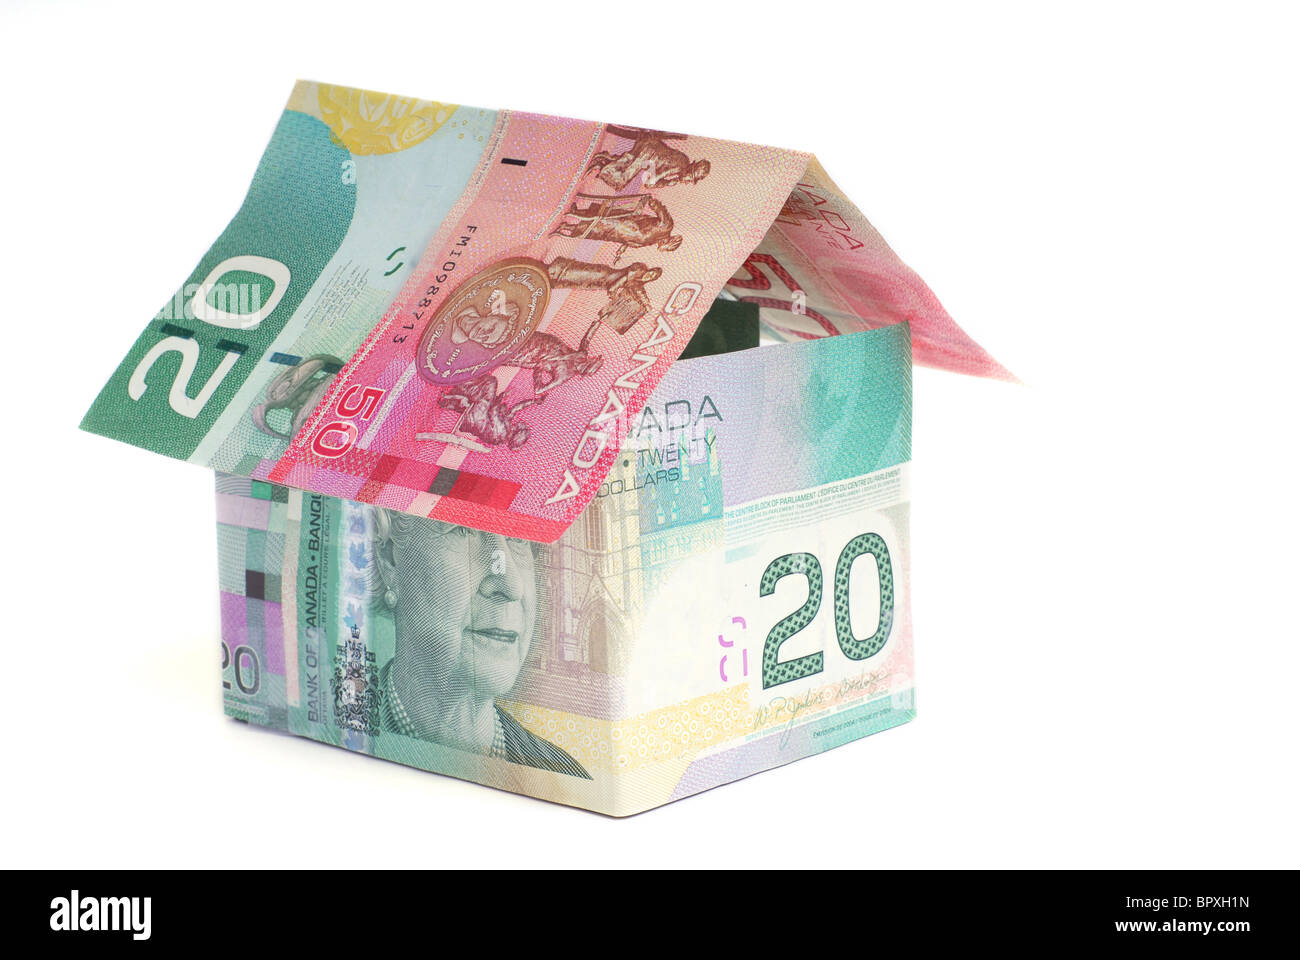 Maison faite de l'argent canadien Photo Stock